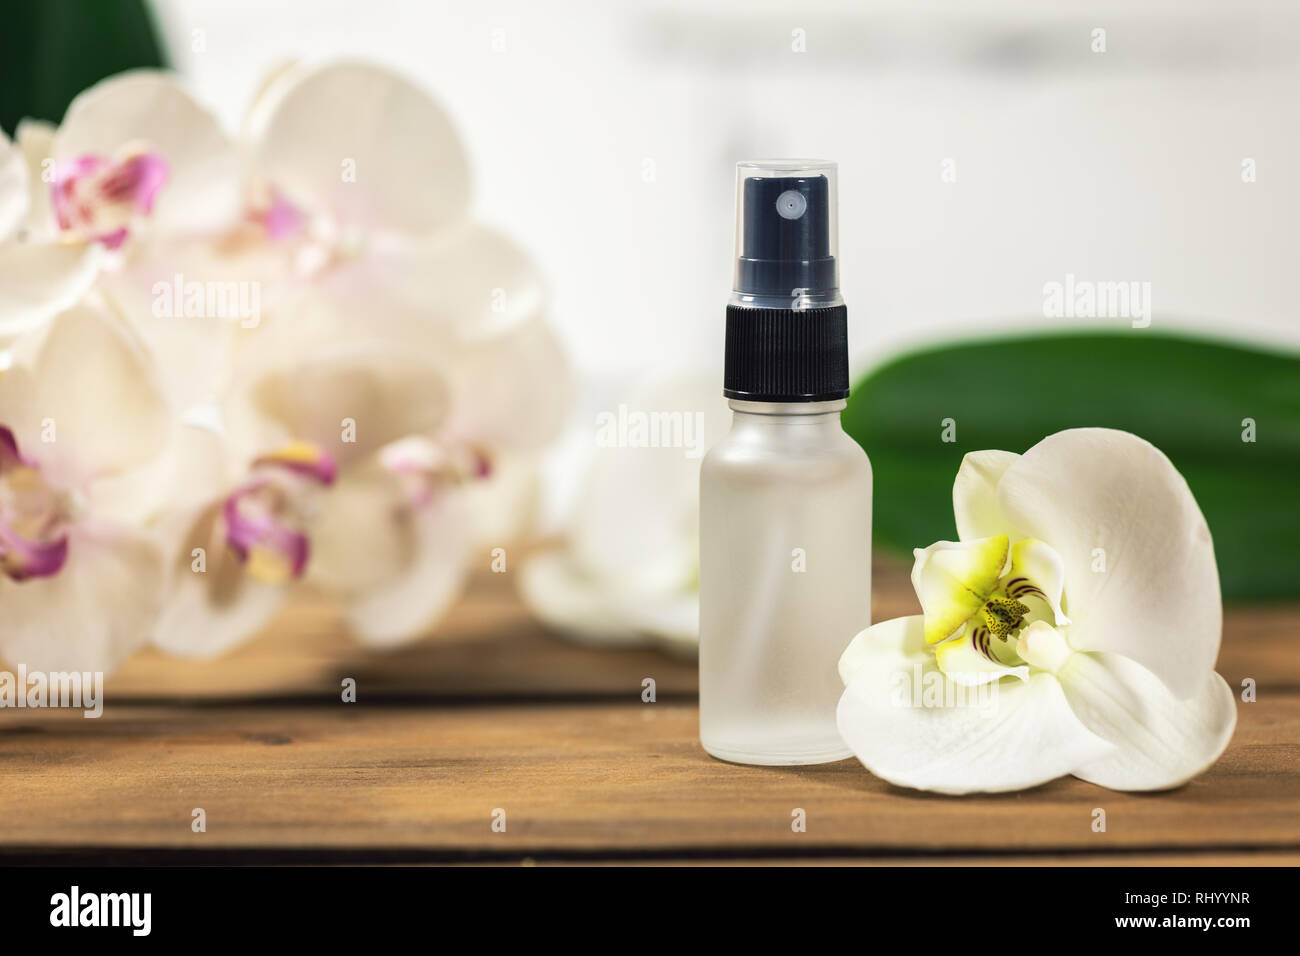 floral scent perfume sprayer with orchid flower - Stock Image